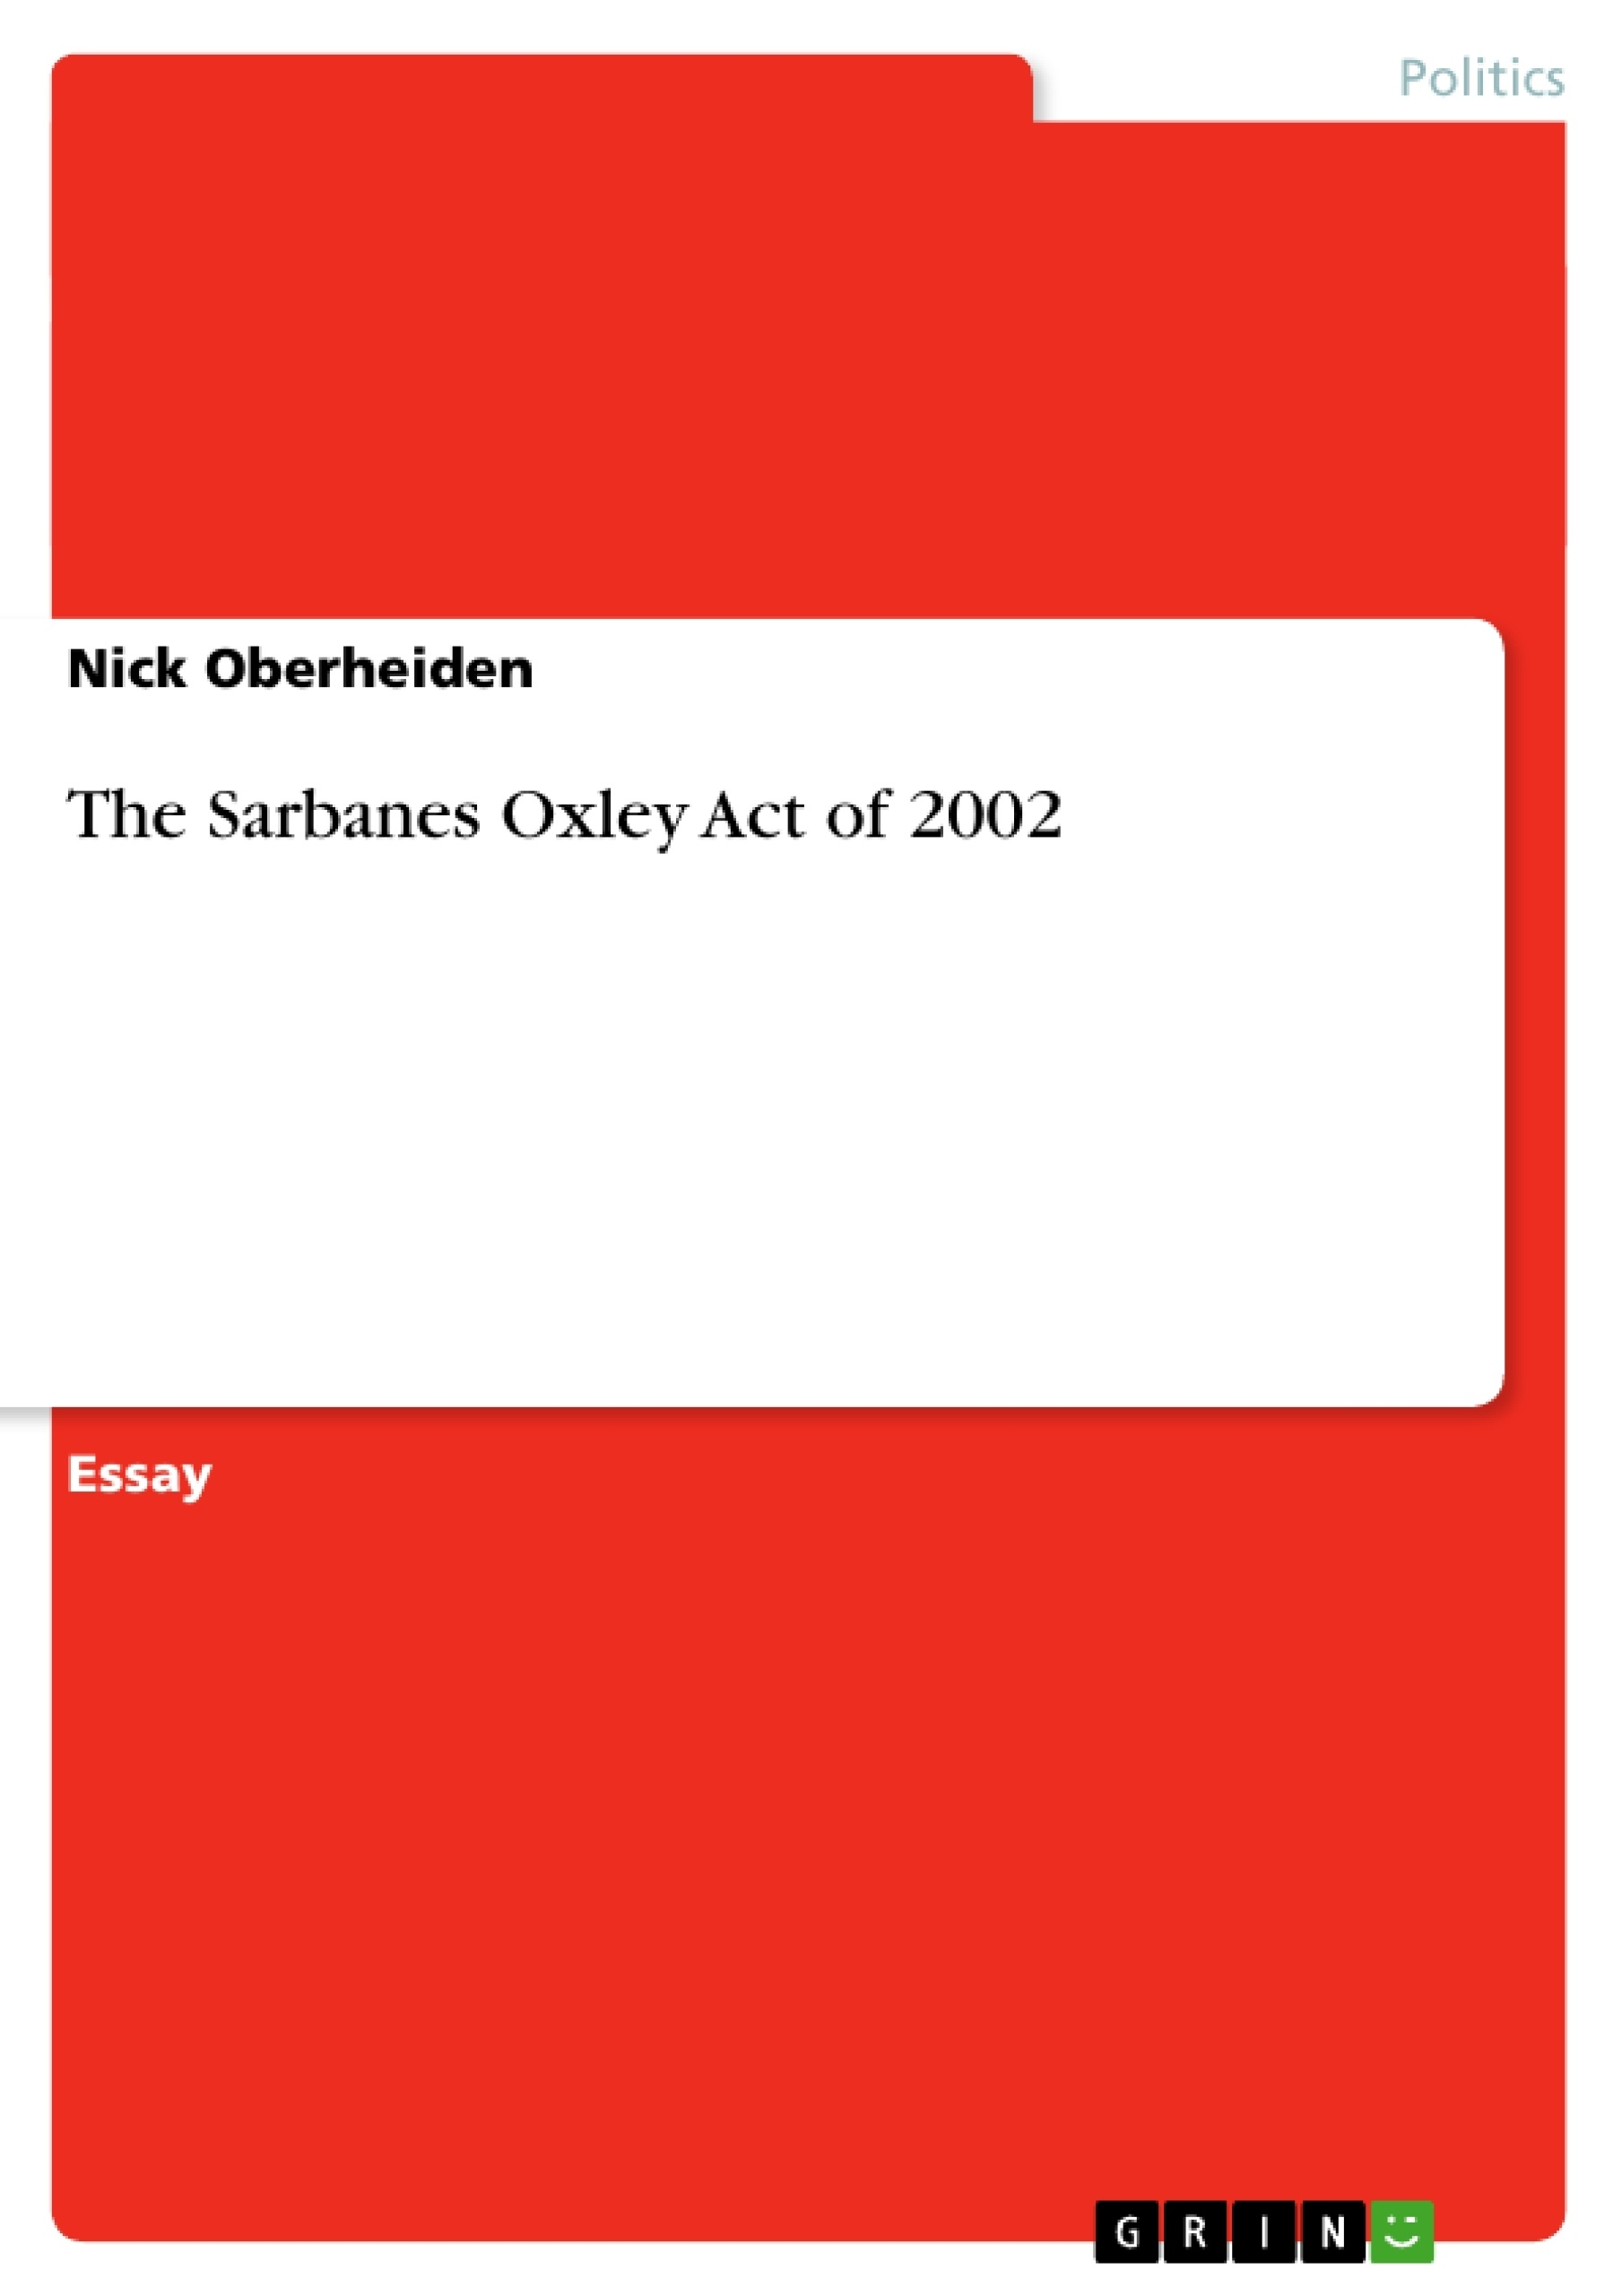 Title: The Sarbanes Oxley Act of 2002